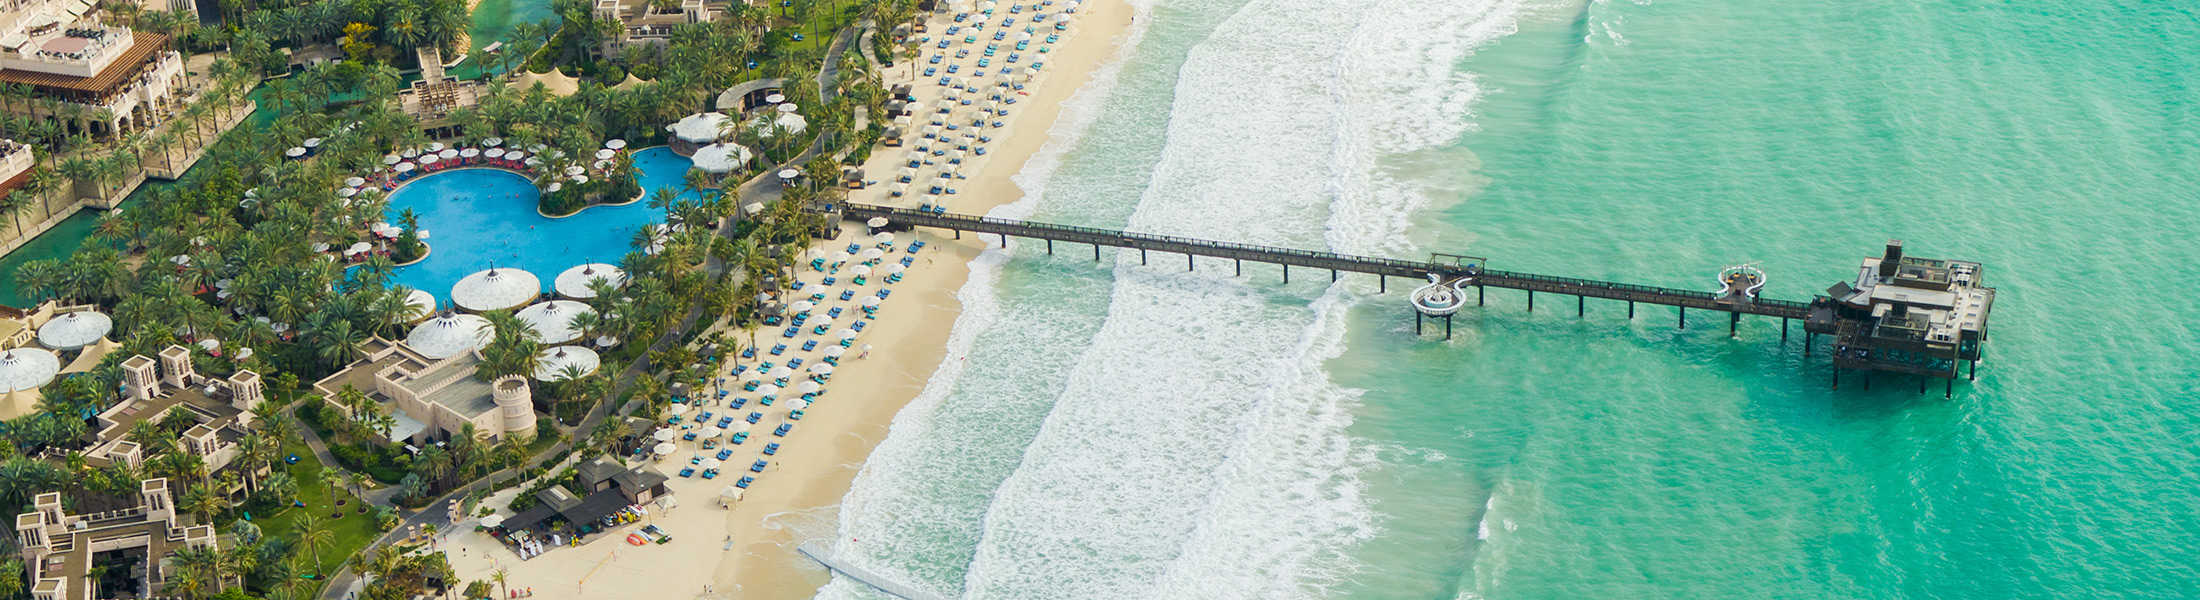 Aerial view of the private beach at Jumeirah Dar Al Masyaf